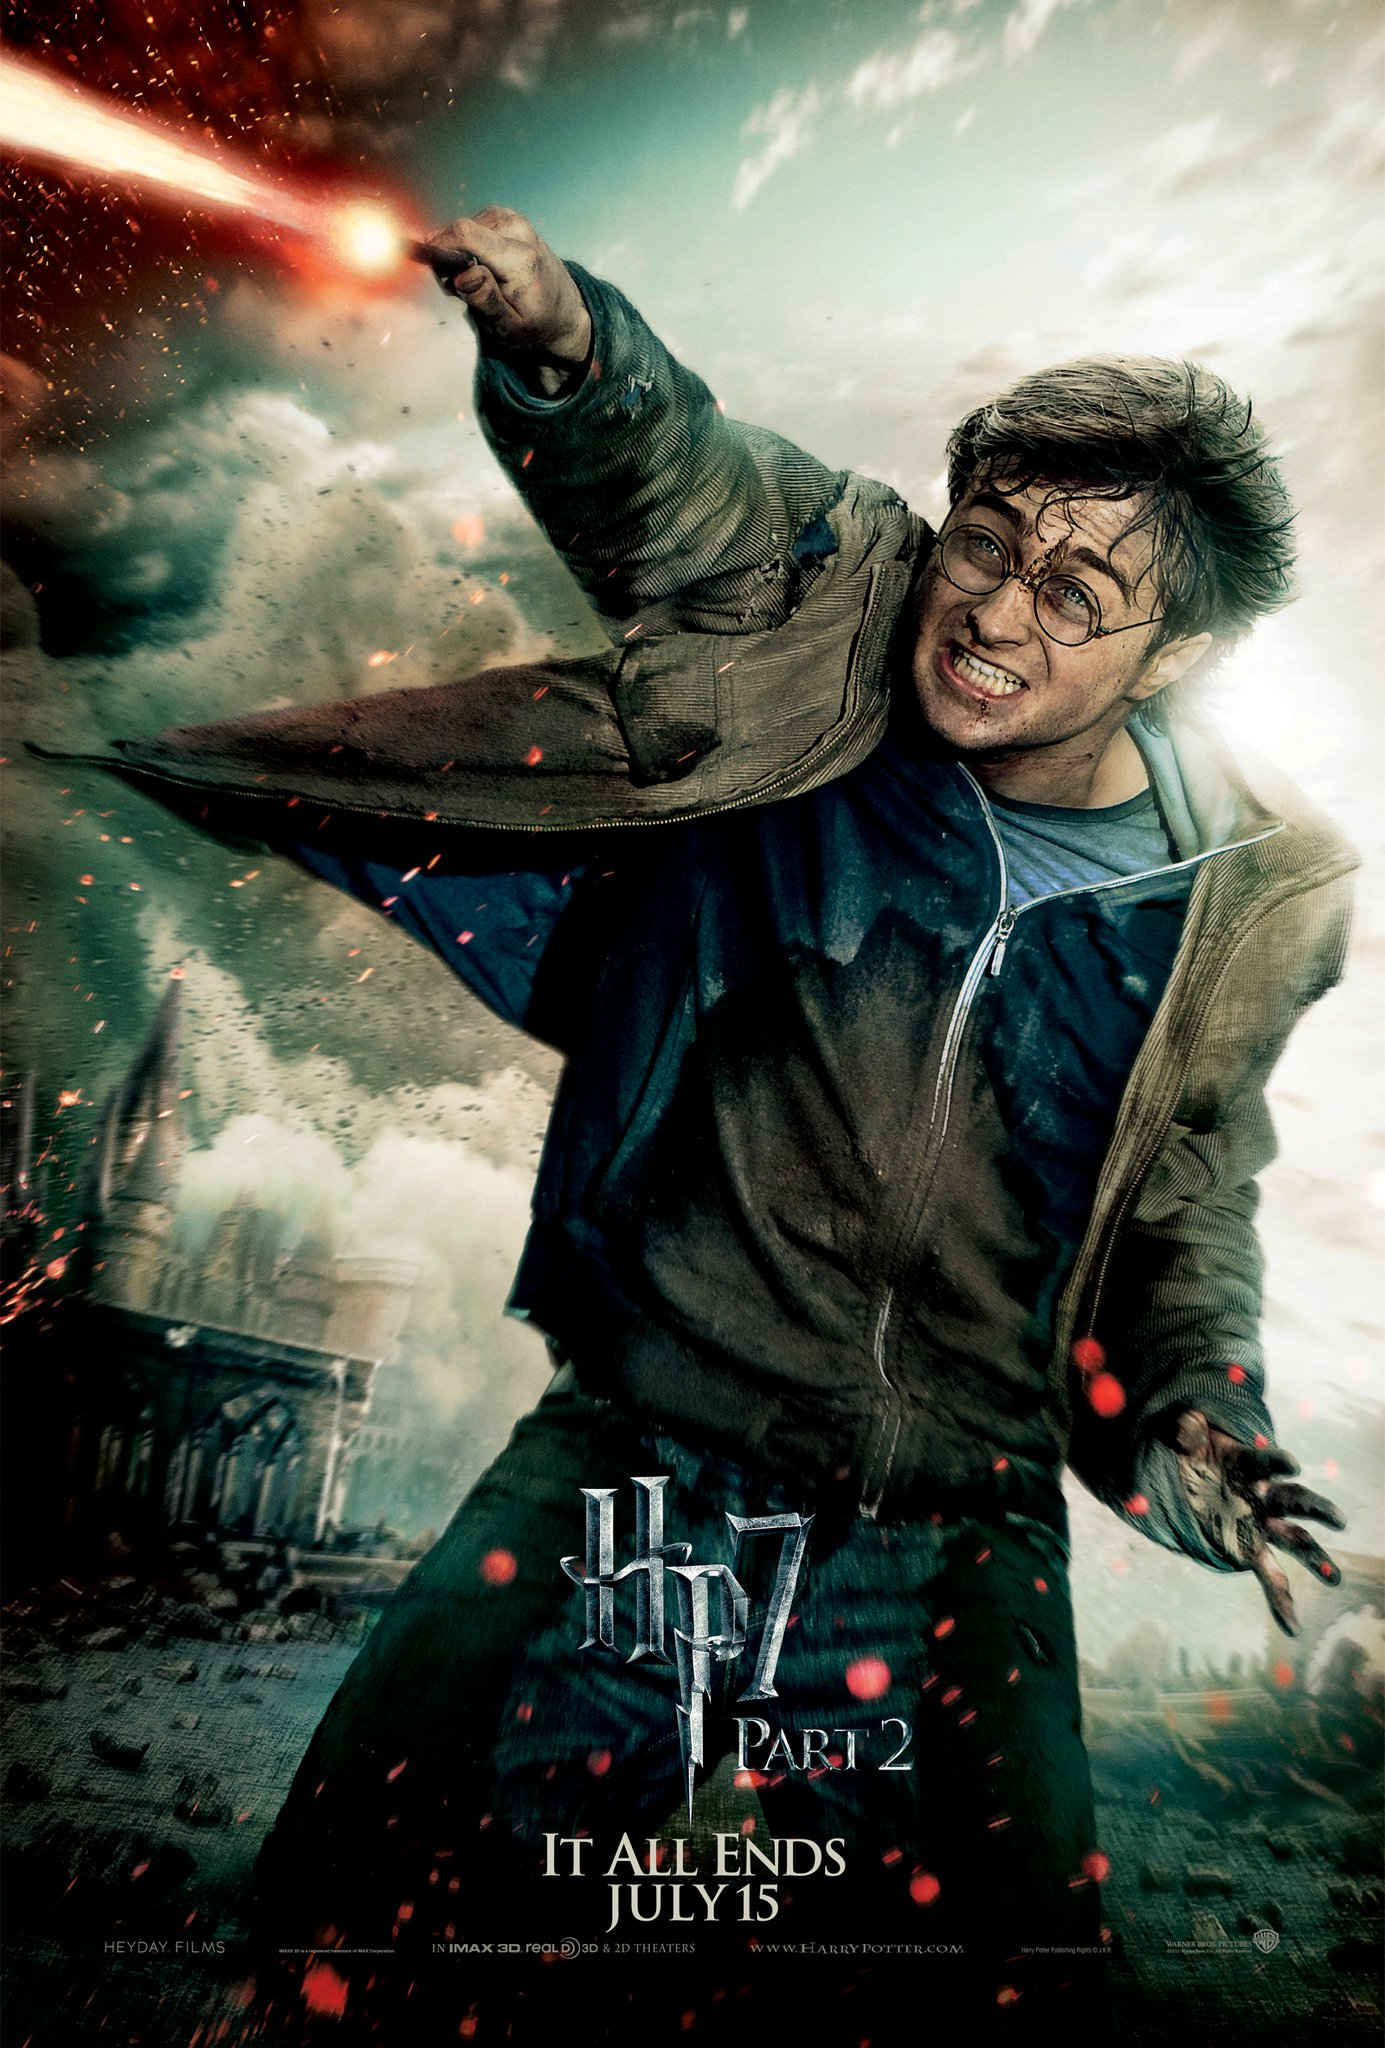 Wallpaper HP7 Part 2 poster - Harry Harry Potter